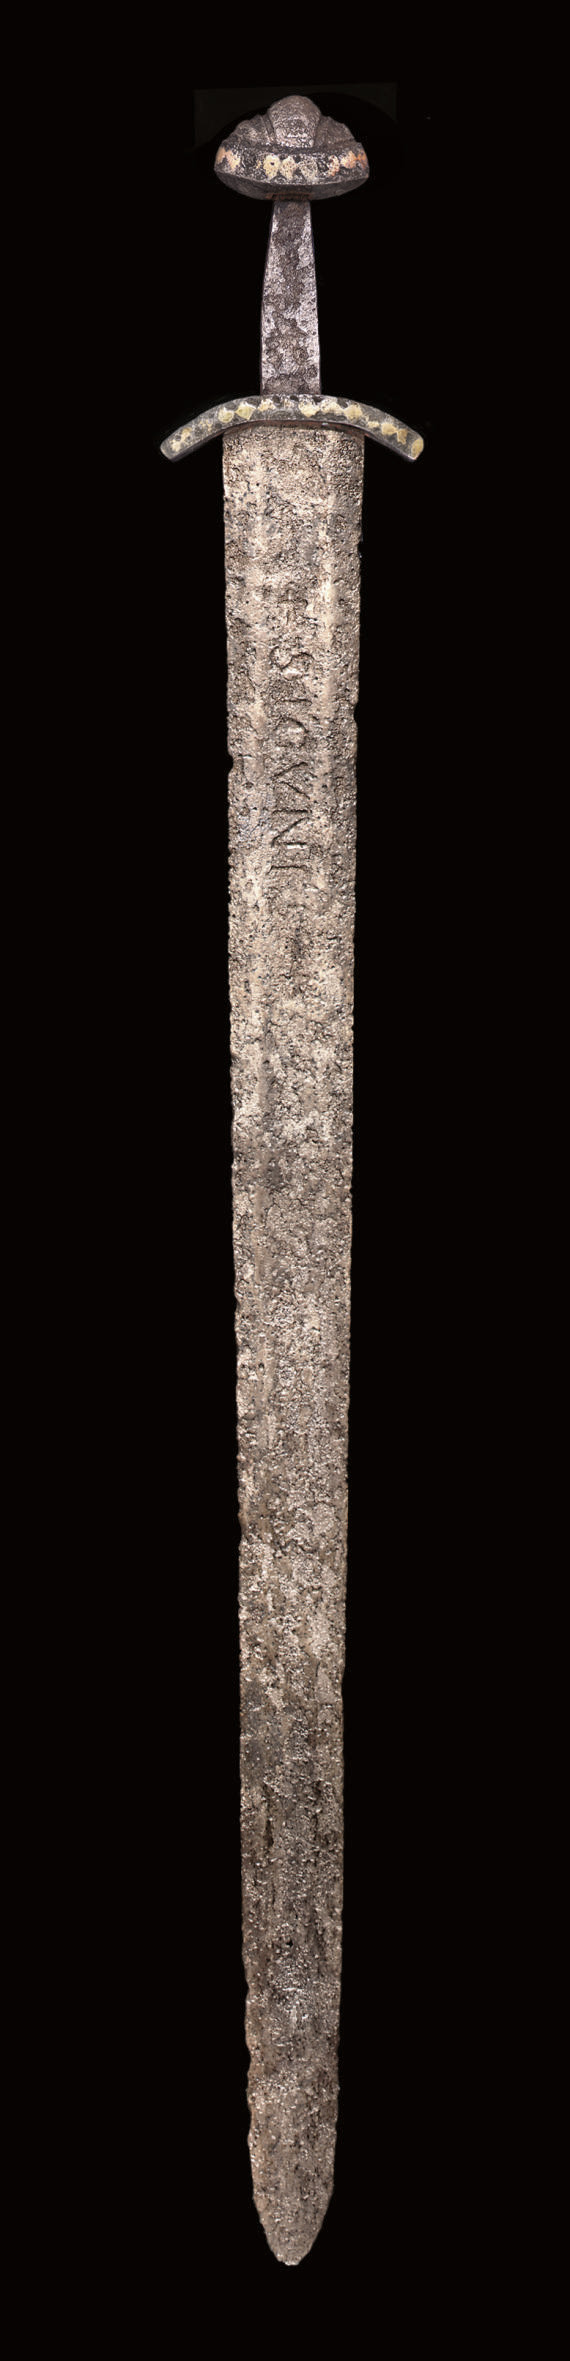 A RARE ANGLO-SAXON SWORD OF VIKING TYPE, THE HILT INLAID WITH TWO COLOURS OF GOLD